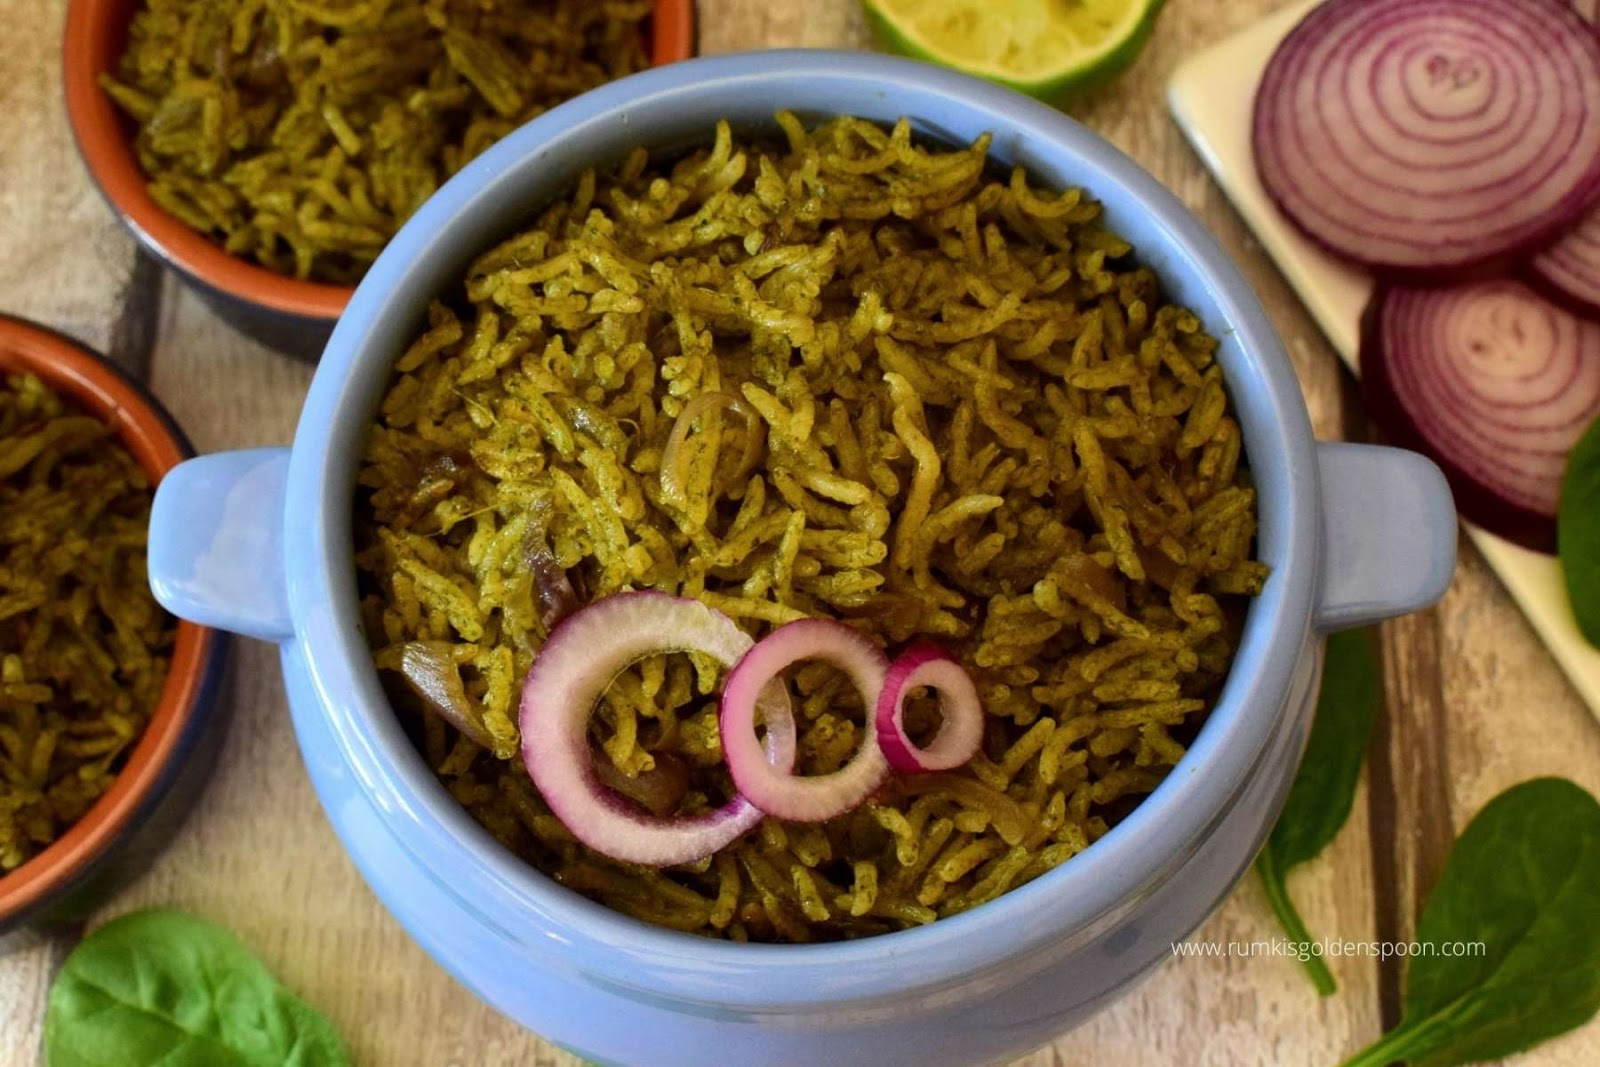 palak rice, palak rice recipe, recipe for palak rice, palak pulao, spinach rice, how to make palak rice, palak pulao recipe, recipe for palak pulao, spinach rice recipe, how to prepare palak rice, palak rice bath, spinach pulao, palak fried rice, palak rice for babies, how to do palak rice, how to make palak pulao, spinach rice recipe indian, palak rice step by step, spinach rice indian, how to make spinach rice, spinach pulao recipe, spinach rice pilaf, rice recipes, rice recipe, with rice recipe, rice recipe vegan, rice recipe vegetarian, rice recipes veg, rice recipe with vegetables, rice recipe Indian, rice recipes indian, Indian rice recipe easy, Rumki's Golden Spoon